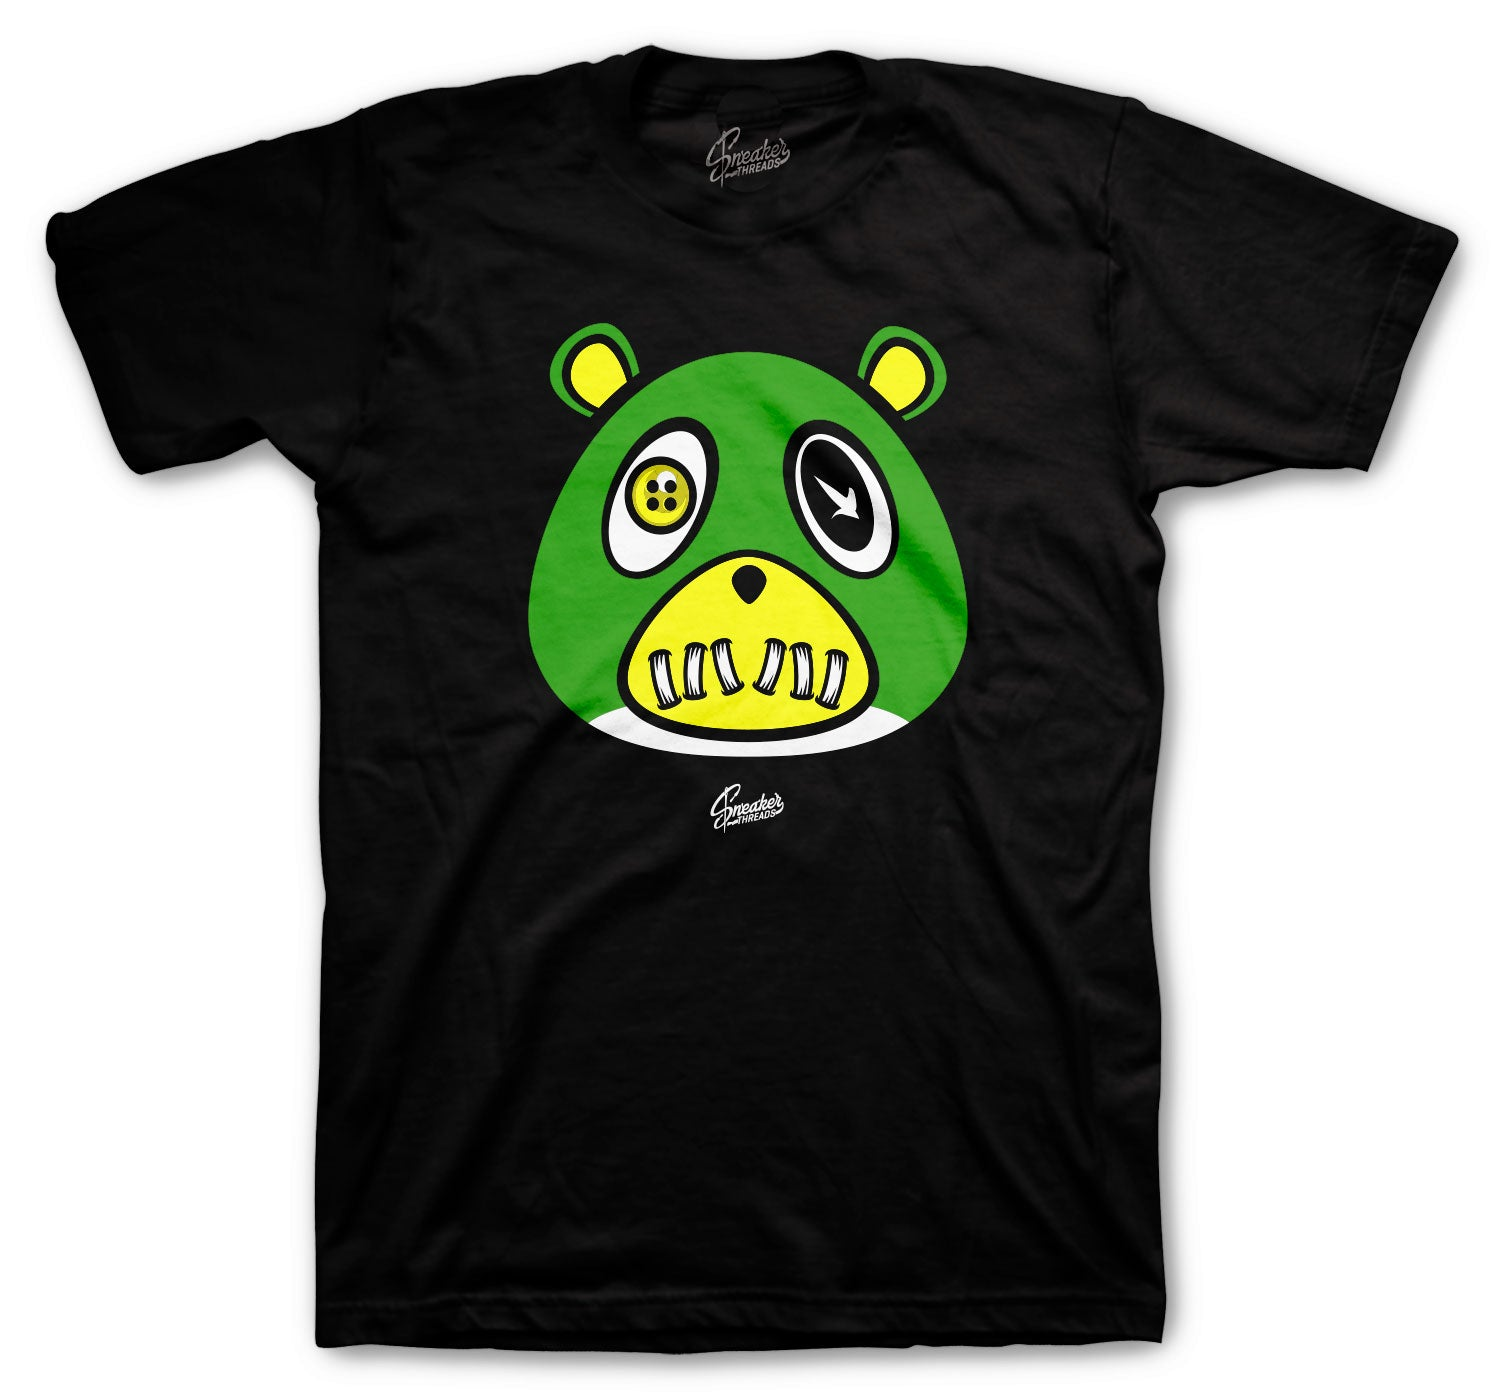 Jordan 5 Oregon ST Bear Shirt